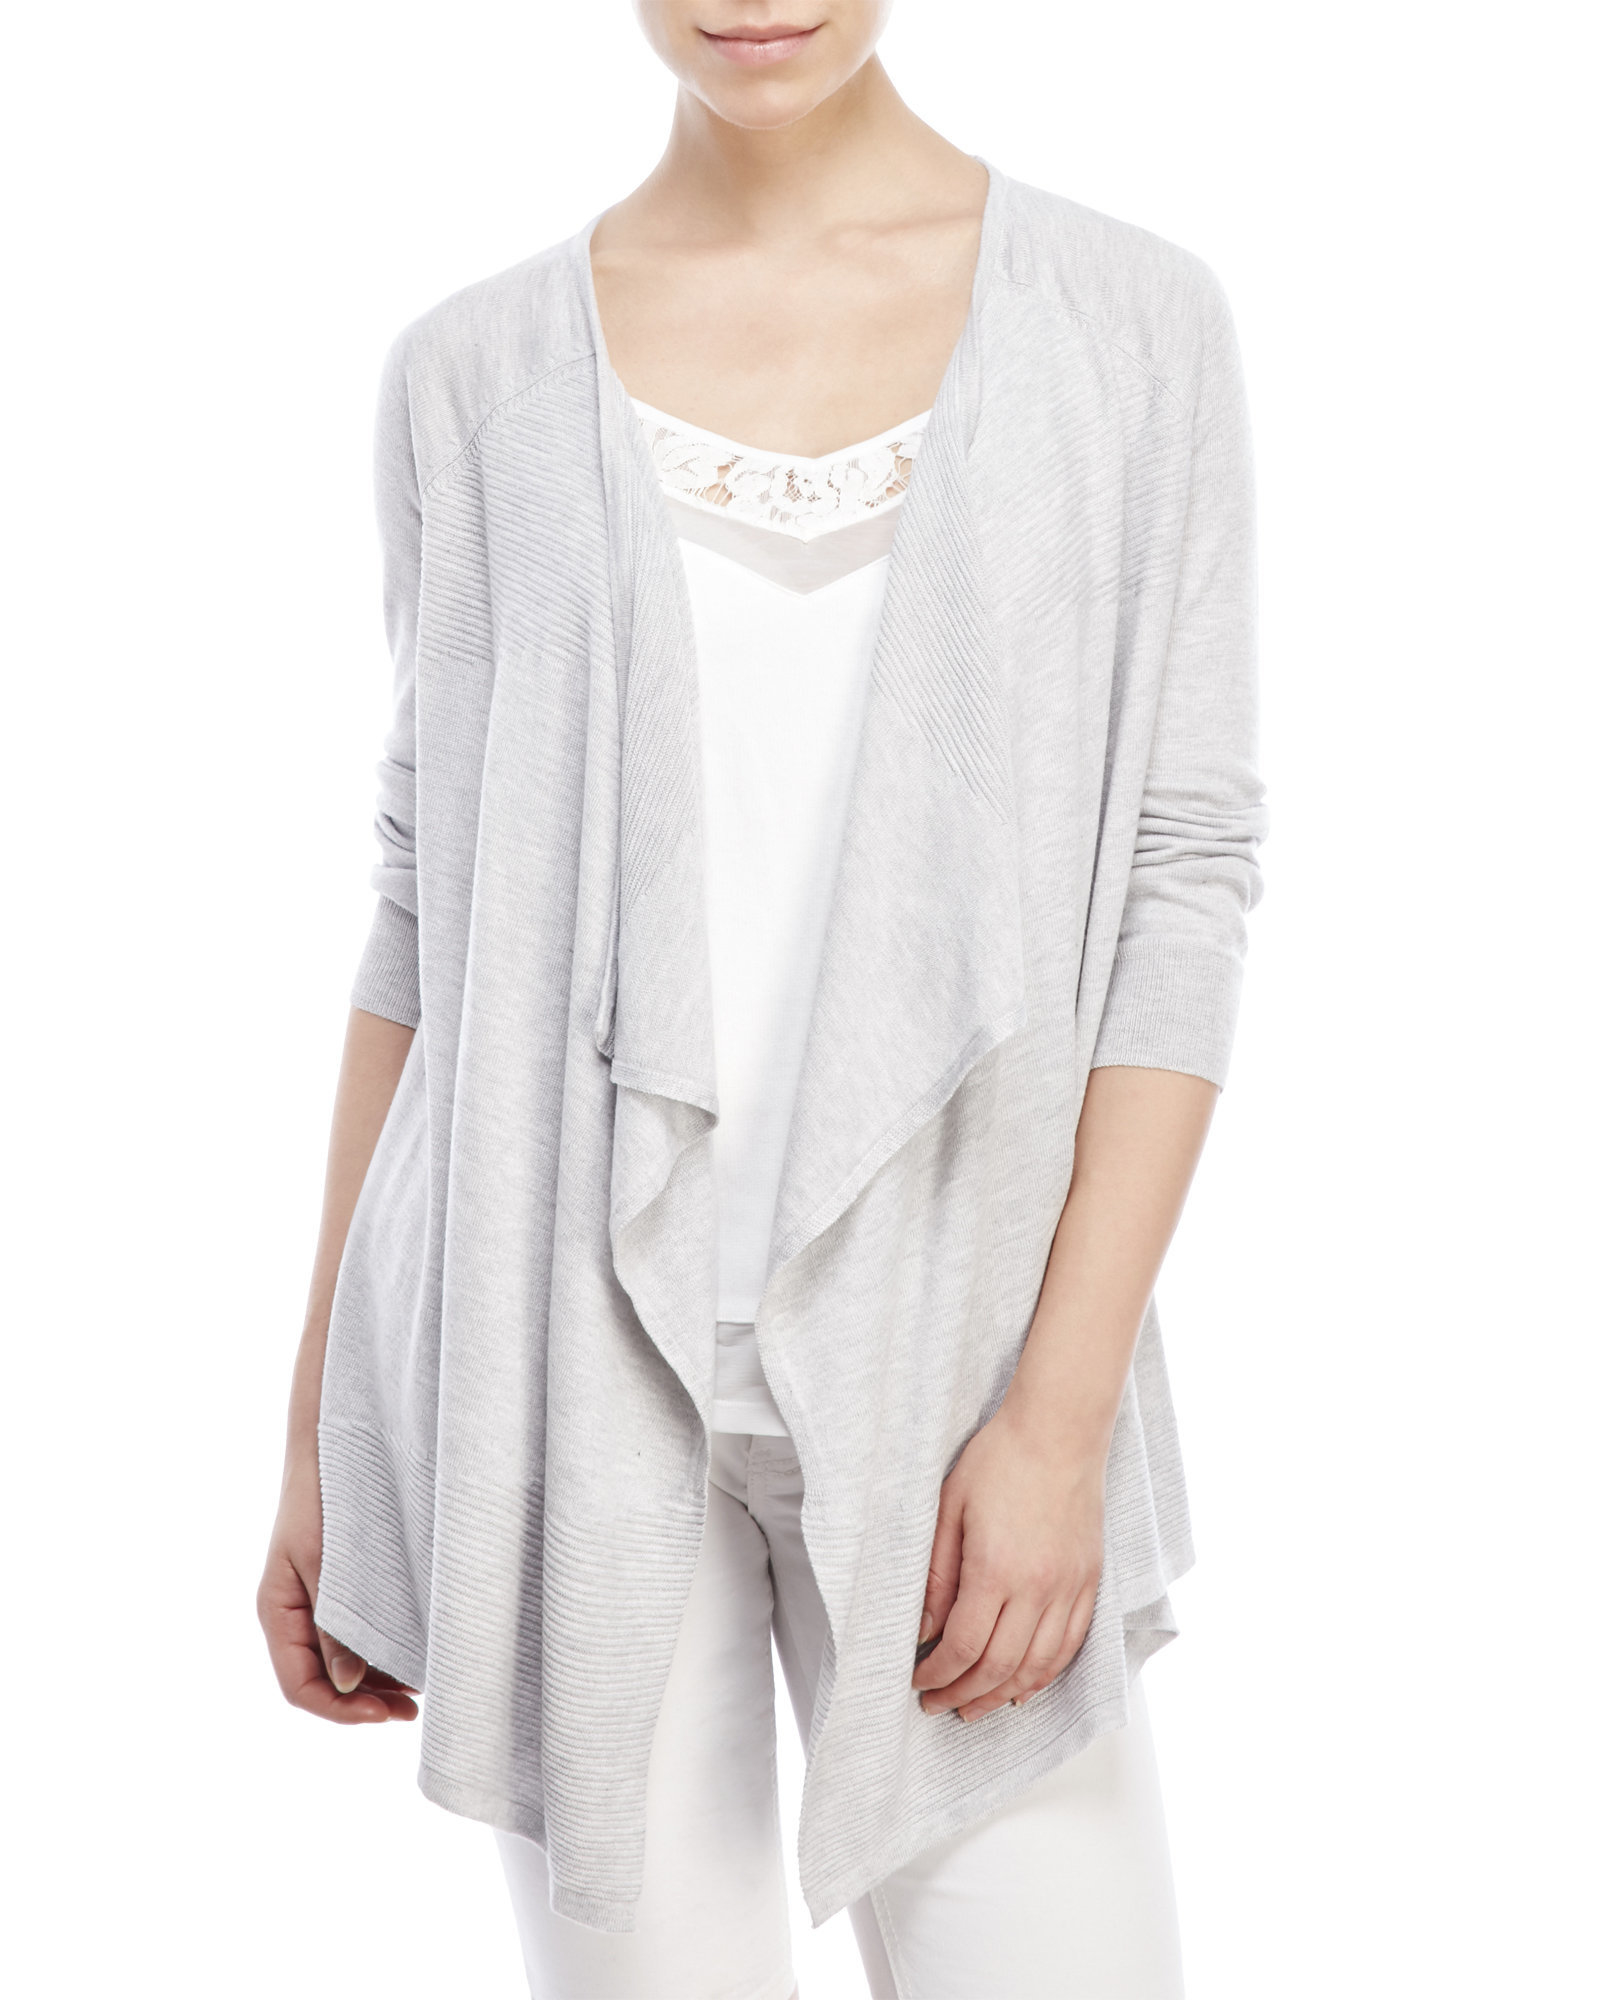 Lyst - Cable & Gauge Three-Quarter Sleeve Draped Cardigan in Gray